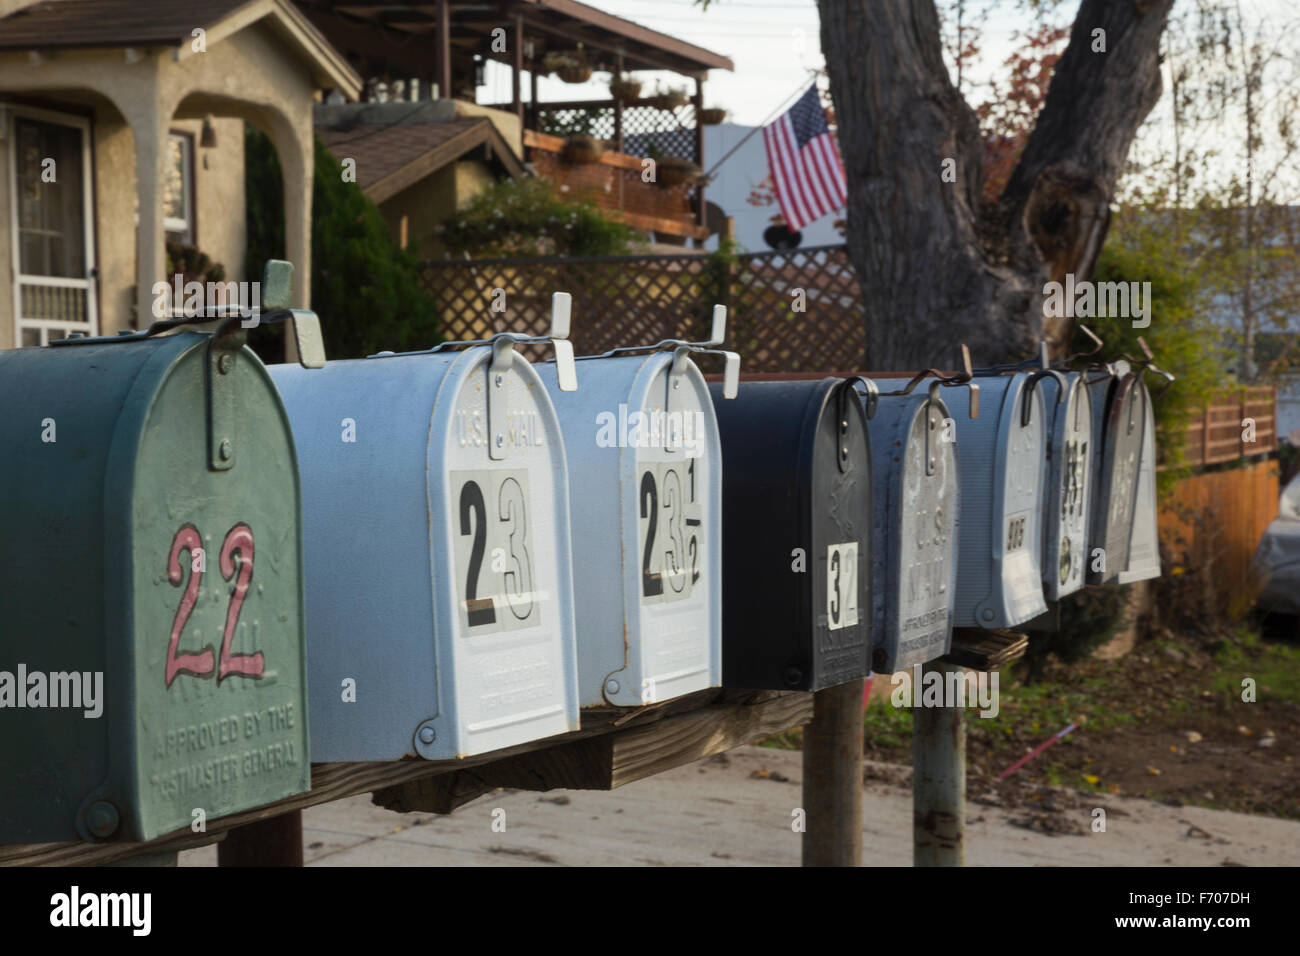 Oak View, California, USA, December 15, mailboxes all lined up - Stock Image